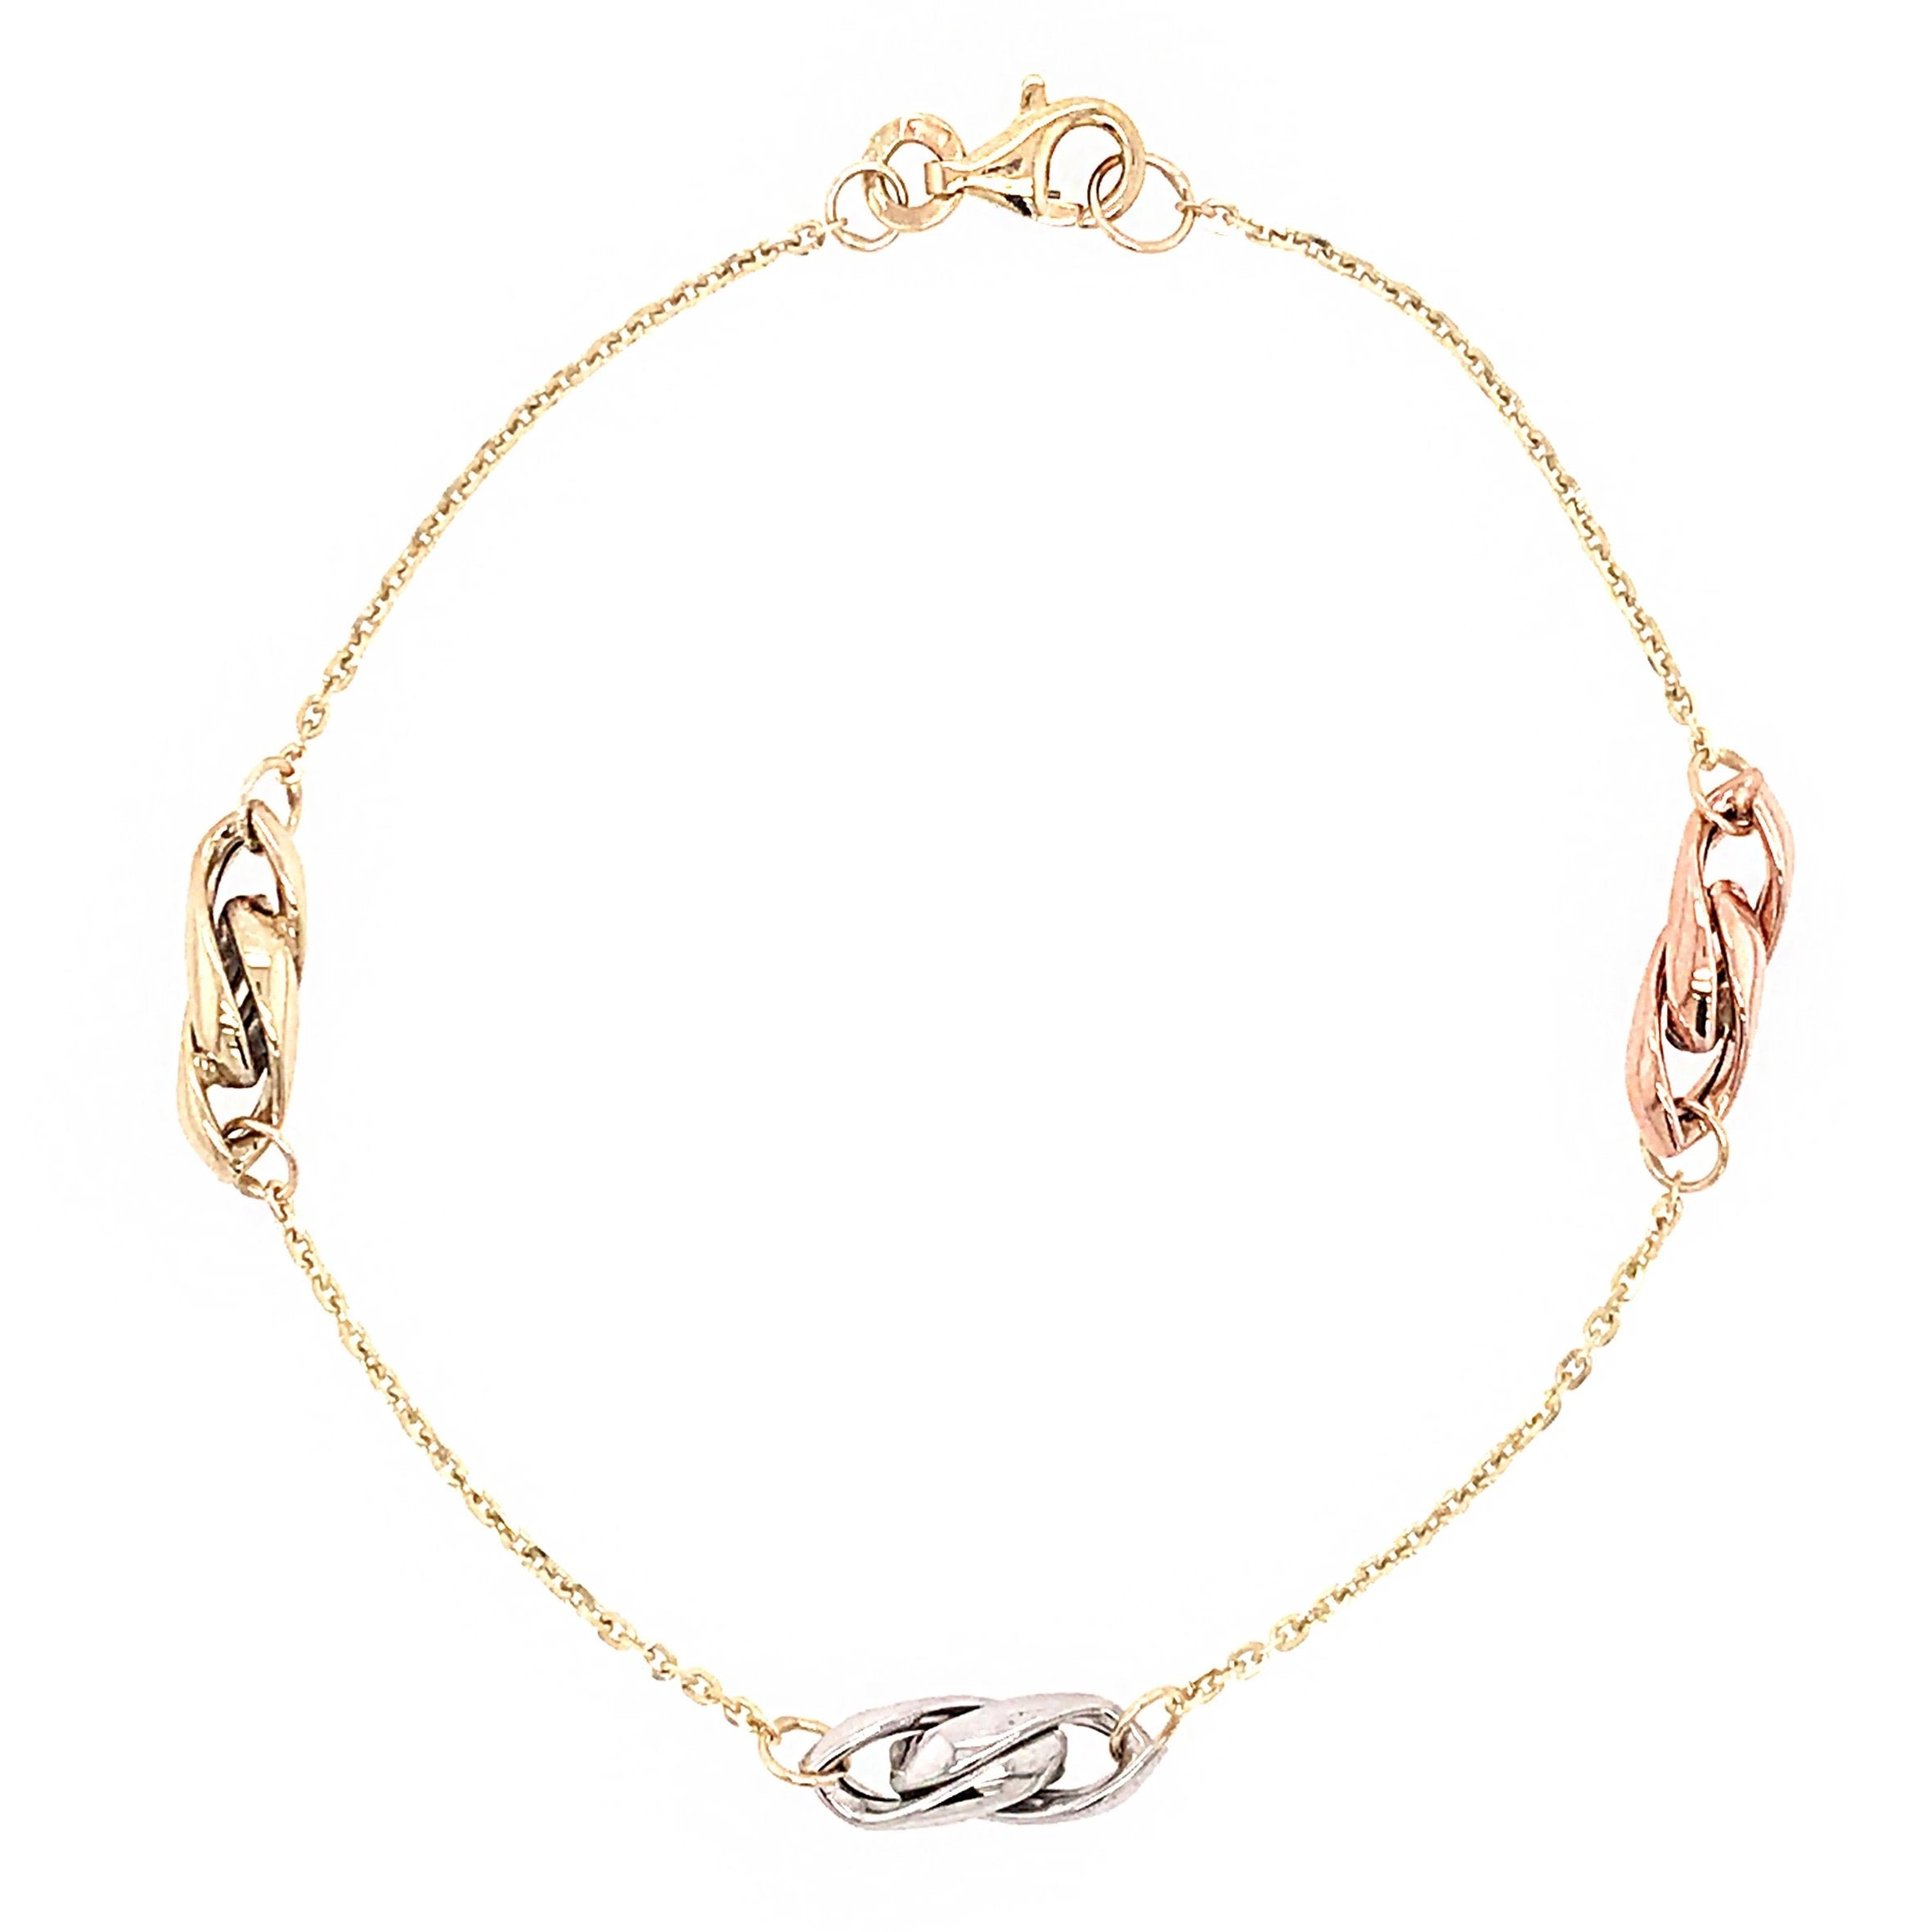 9ct Tricolour Chain Link Bracelet - Andrew Scott